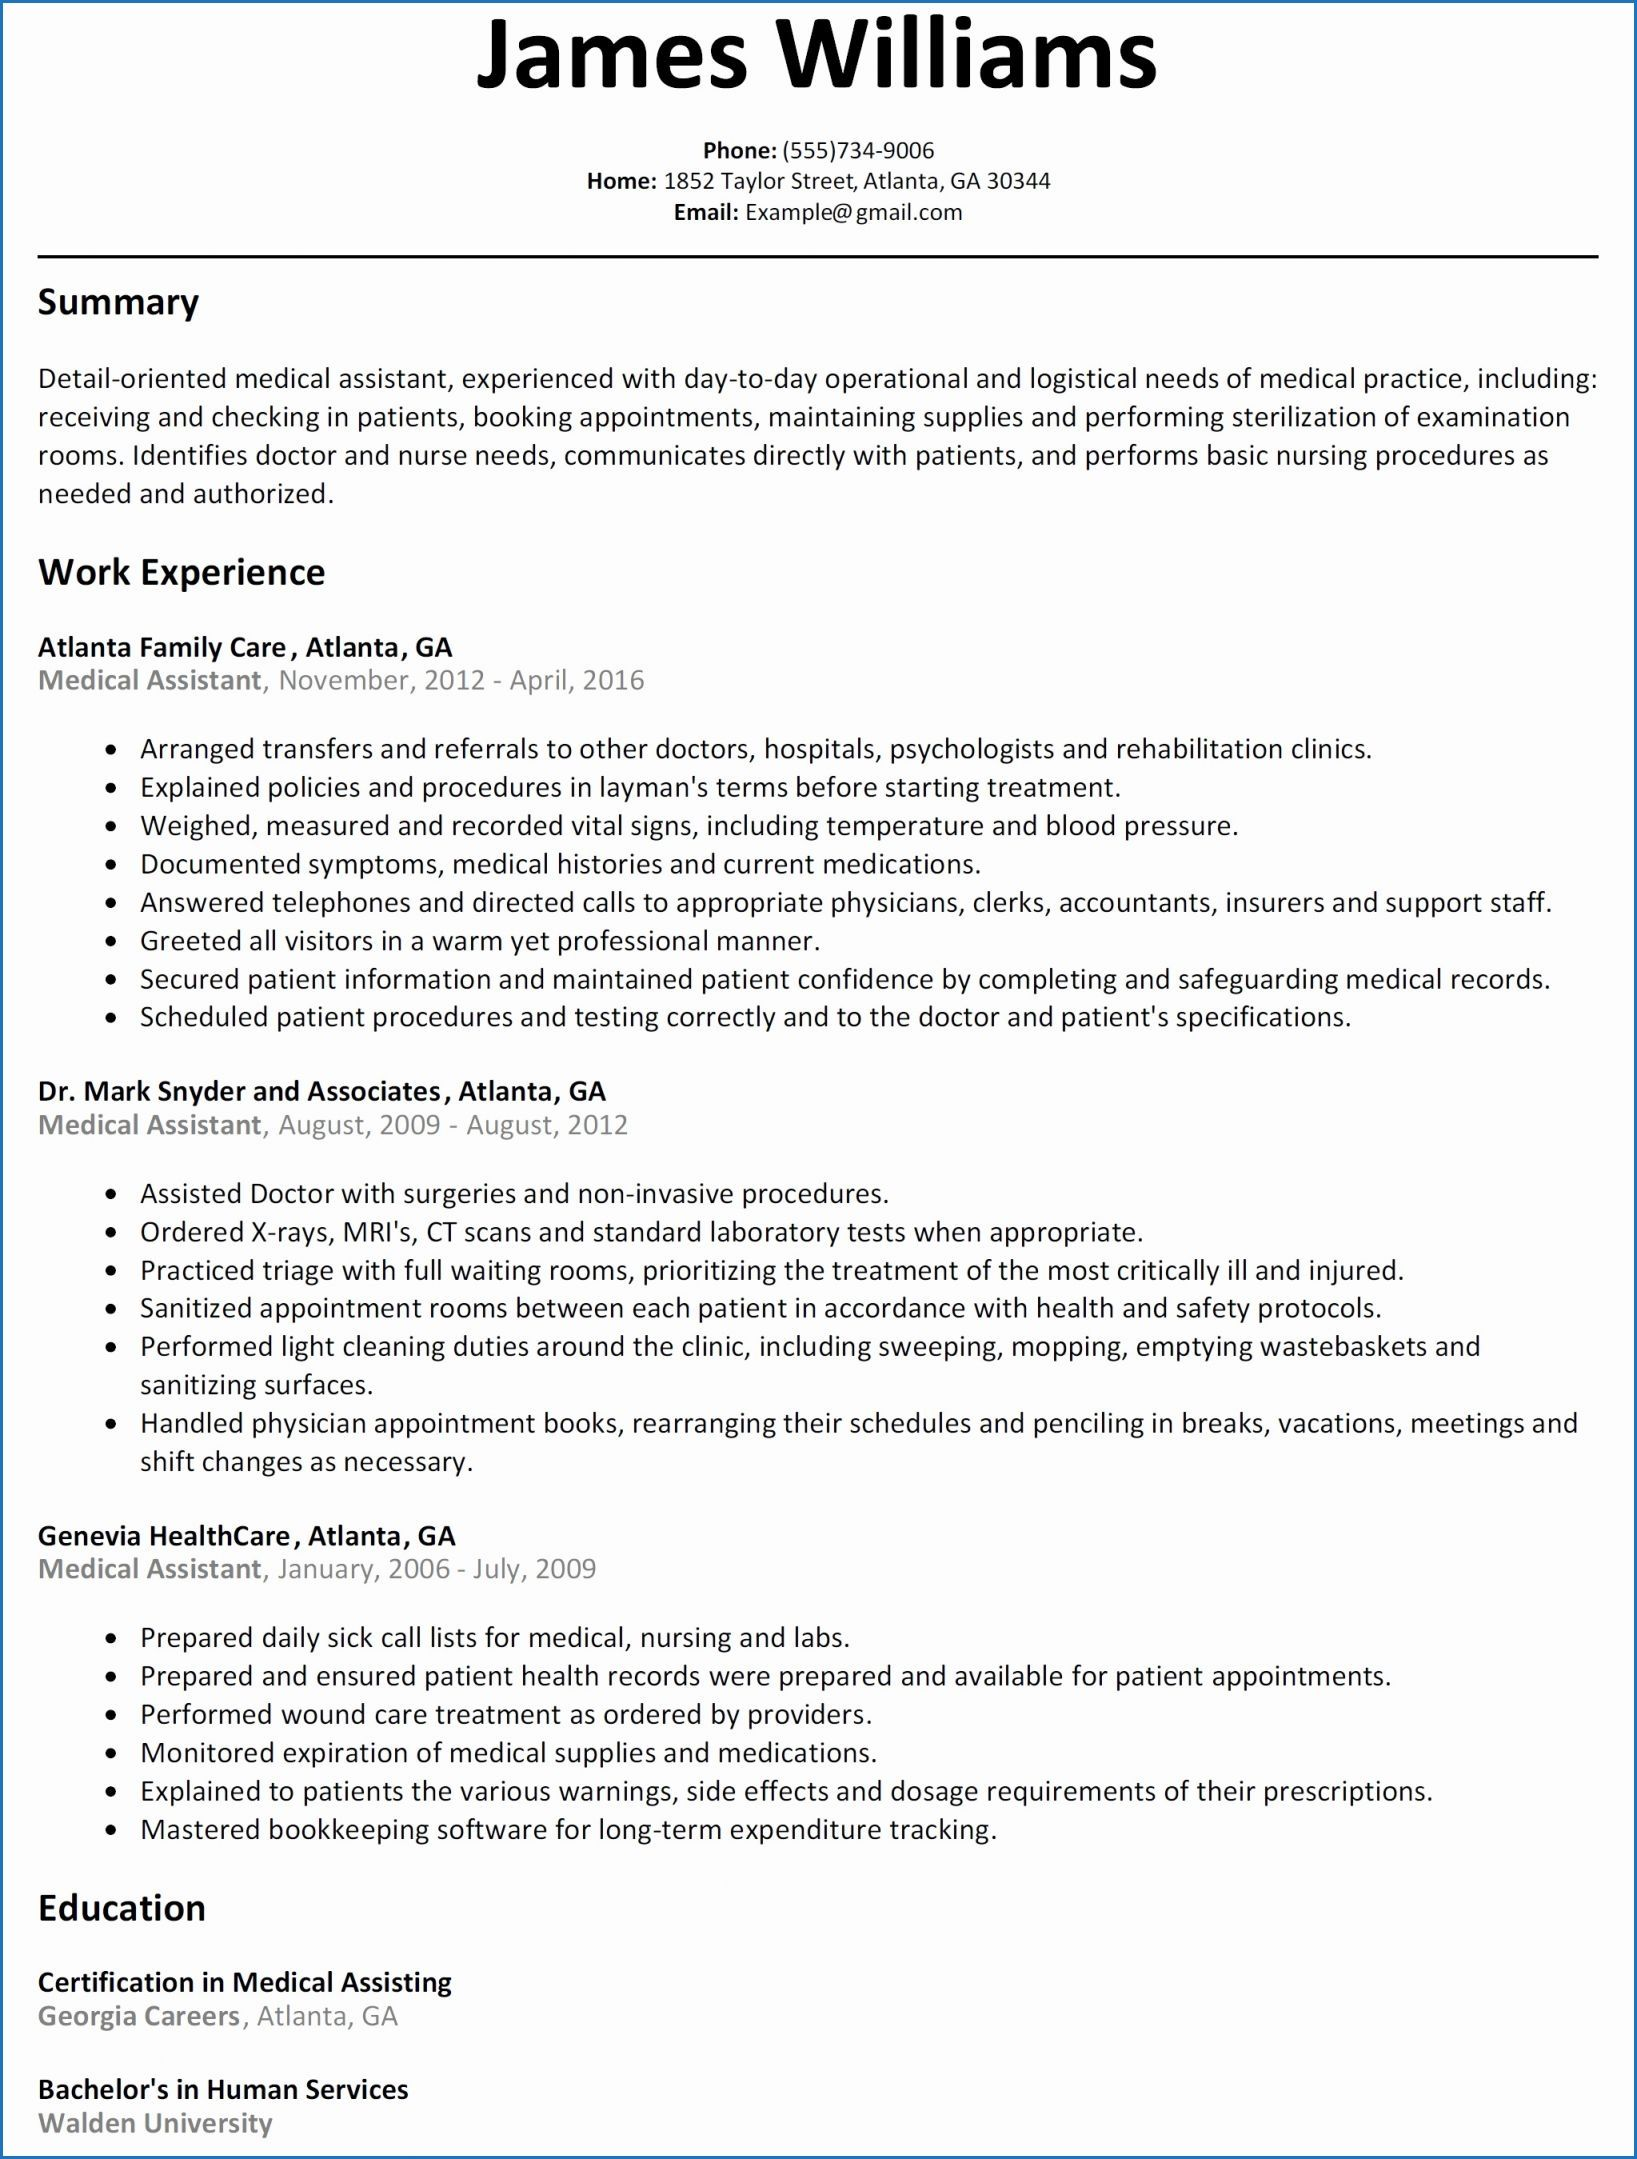 15 Sample Resume Professional Counselor Check More At Https Www Ortelle Org Sample Resume Professional Counselor Wallpaper Hd Mendarat